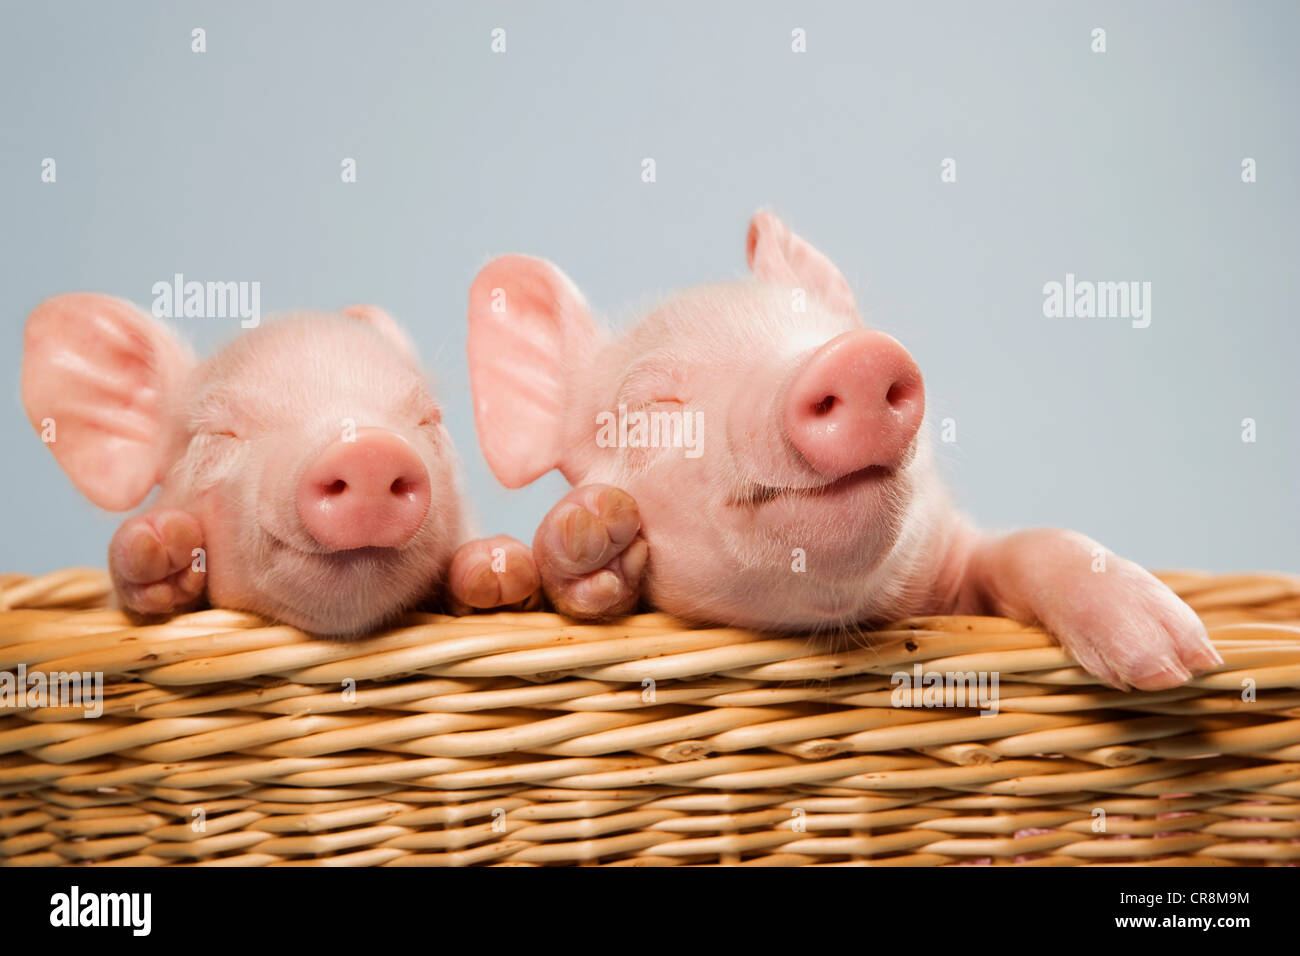 Two piglets in basket - Stock Image